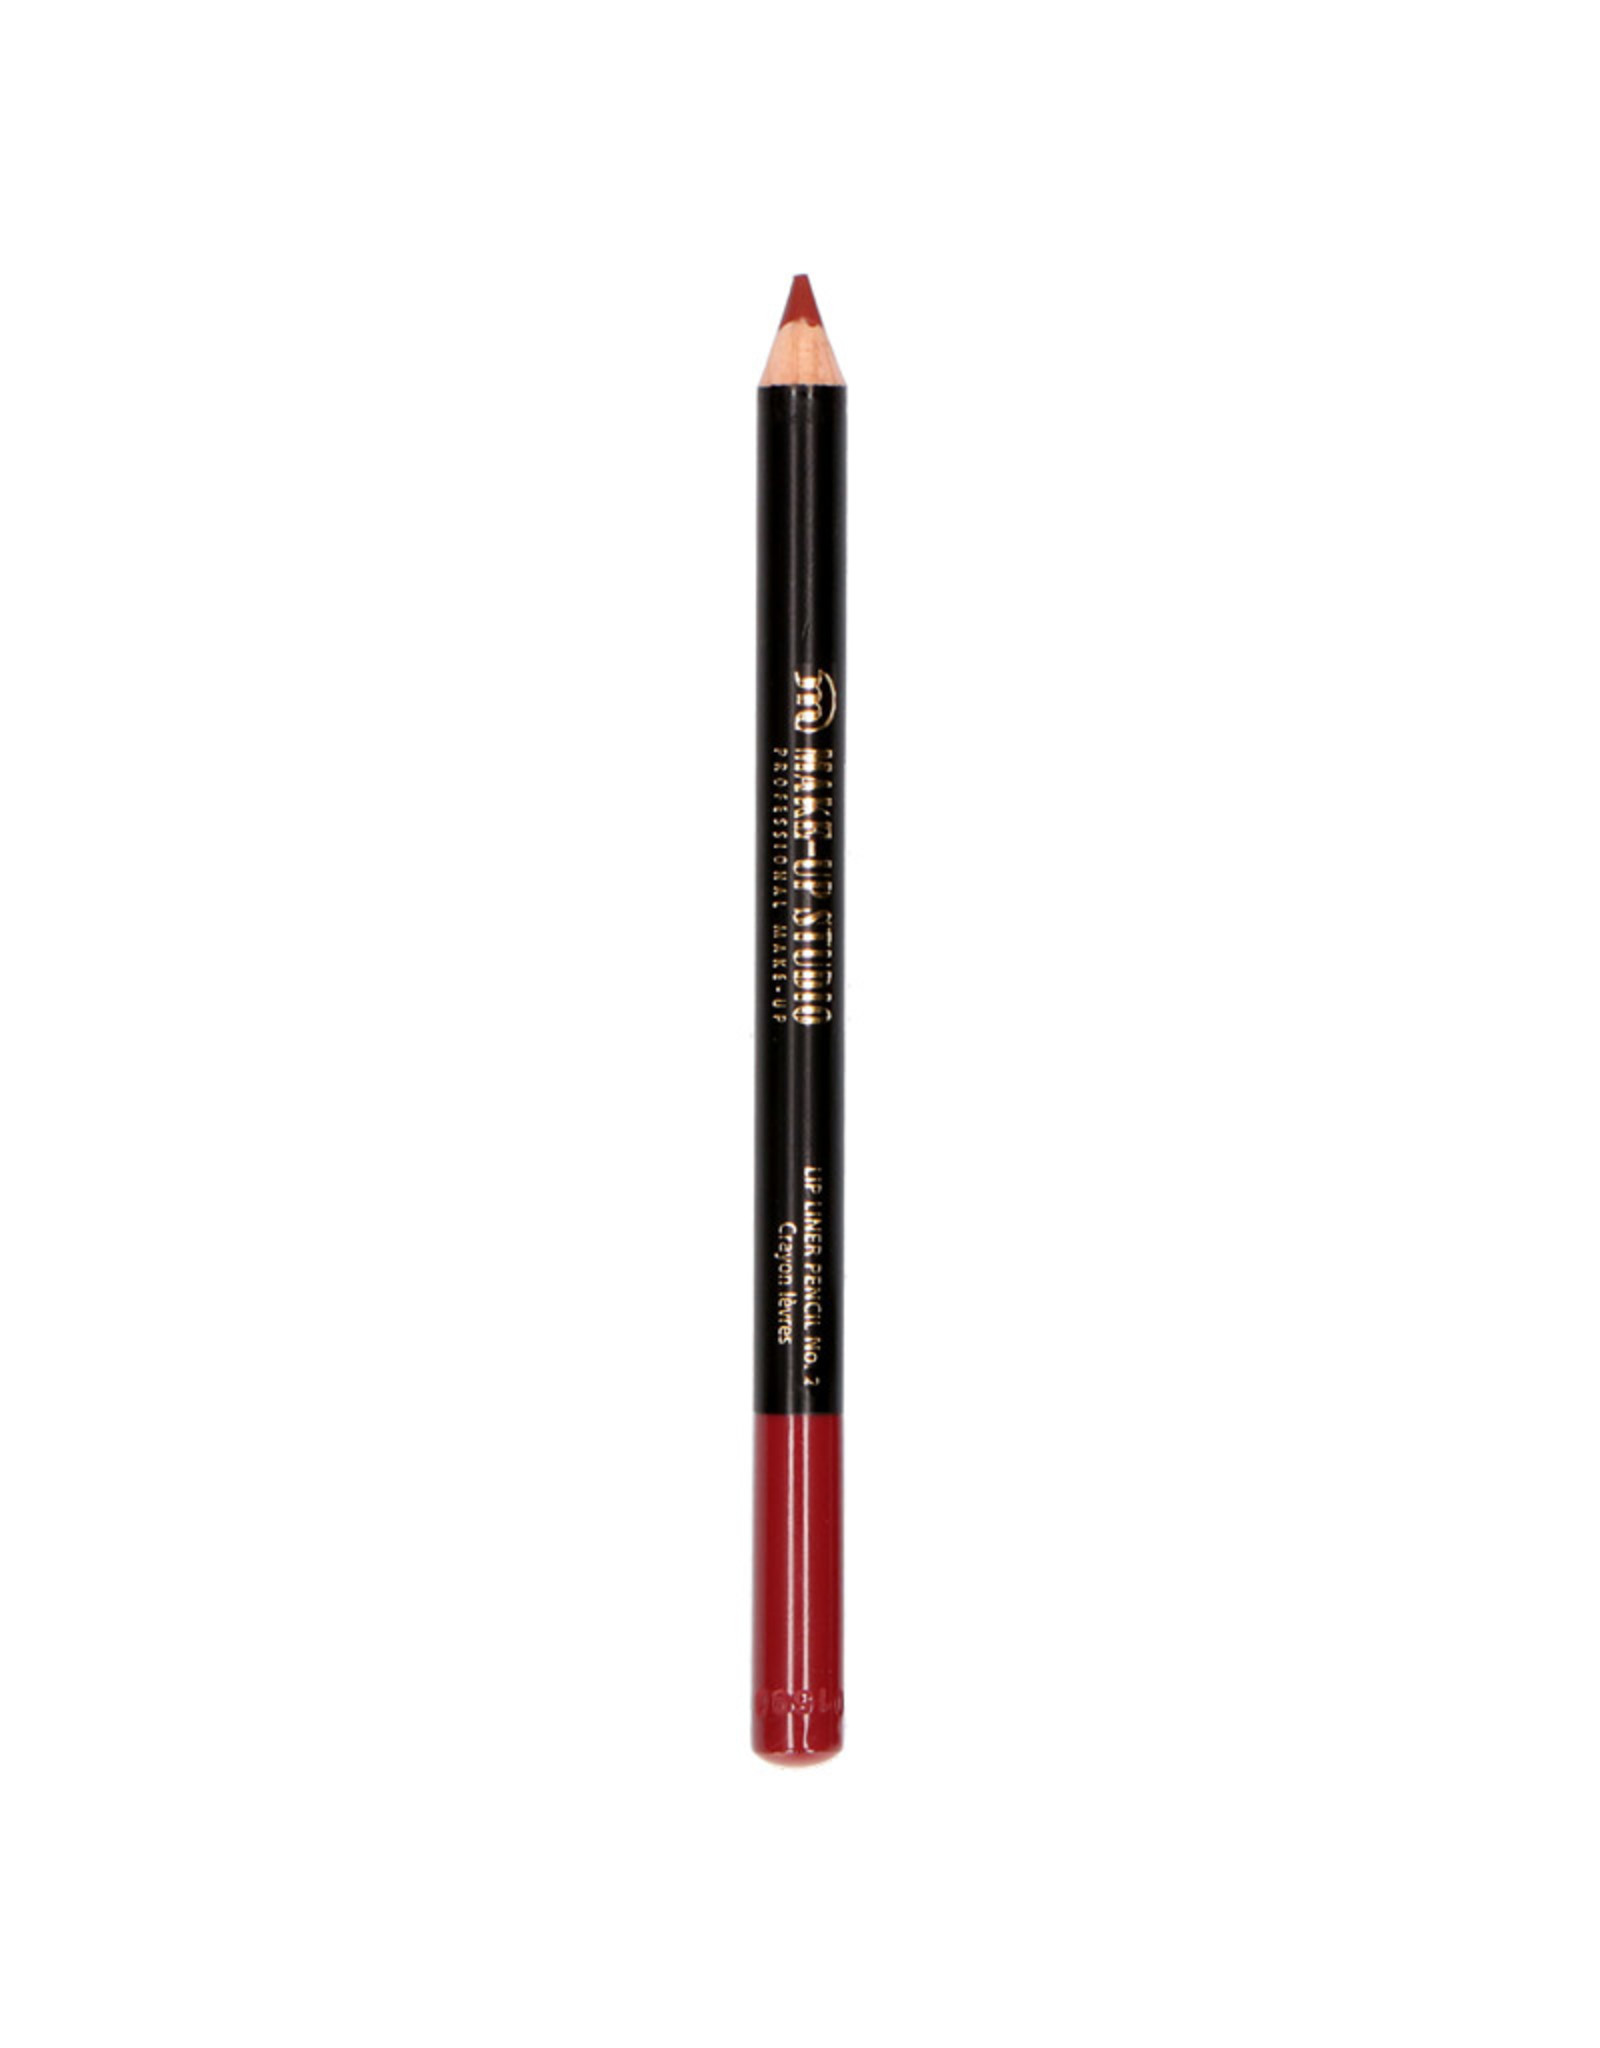 MAKE-UP STUDIO LIP LINER PENCIL 2